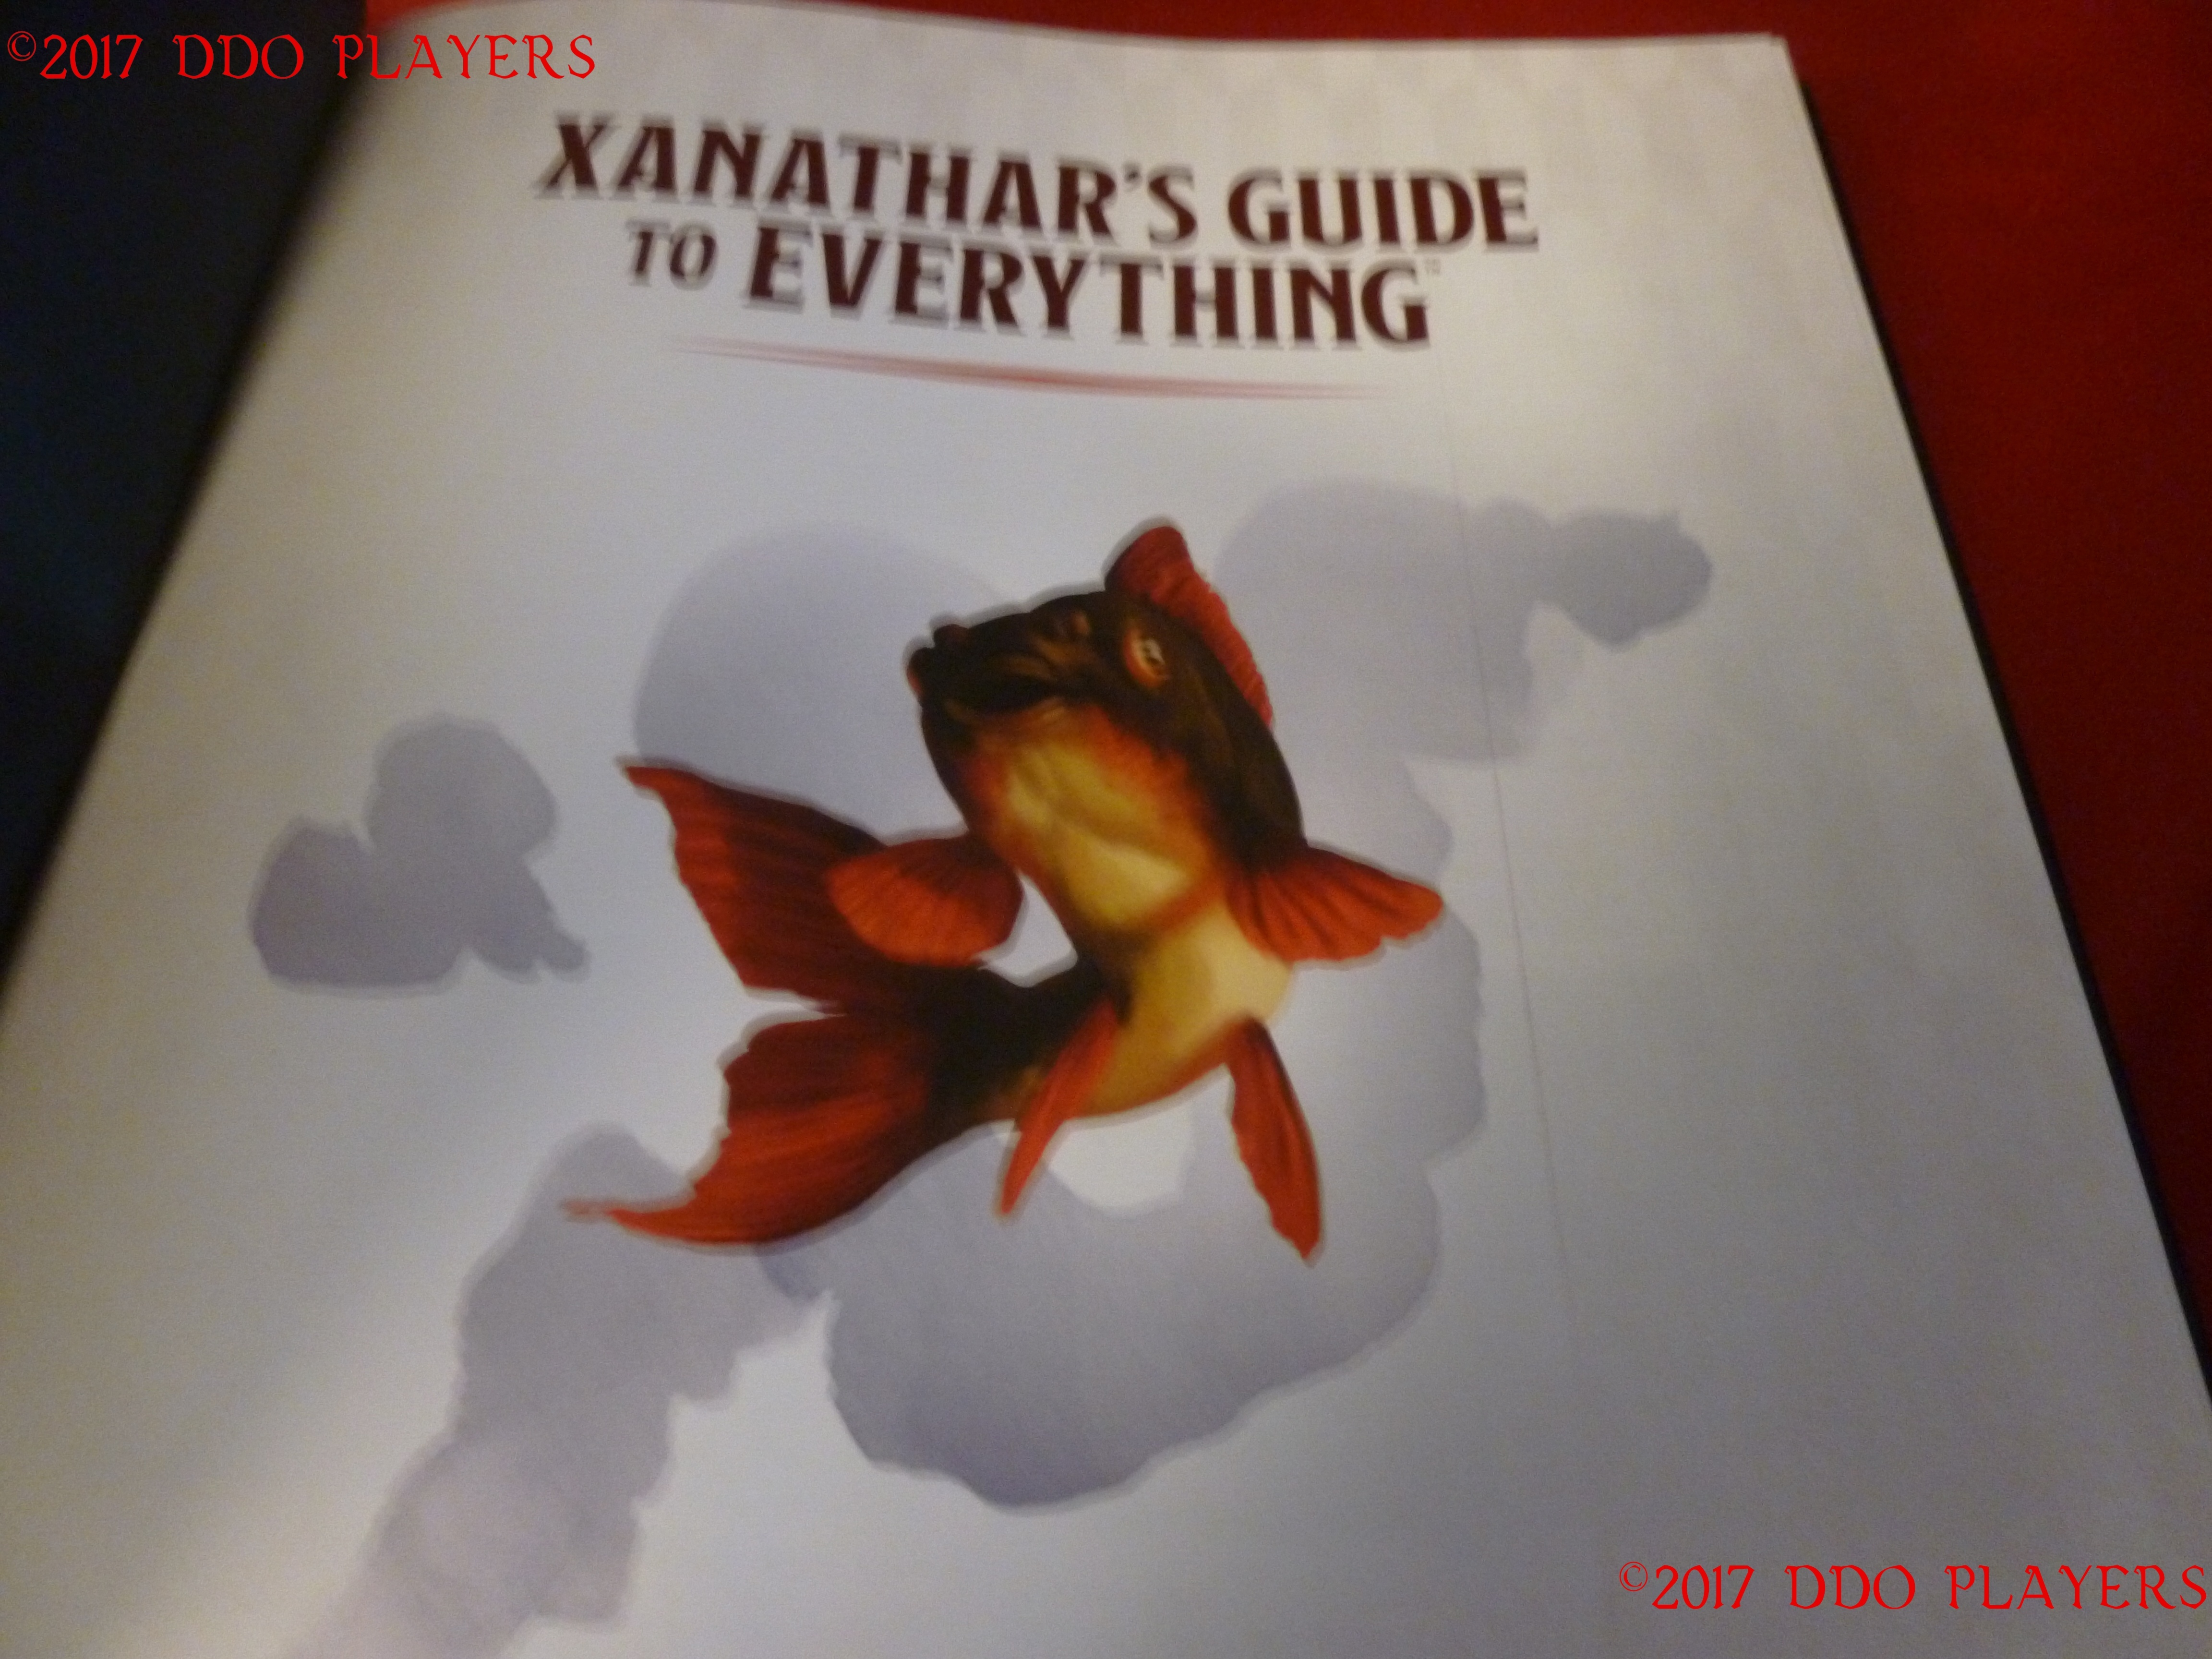 Xanathar's Guide to Everything Review | DDO Players